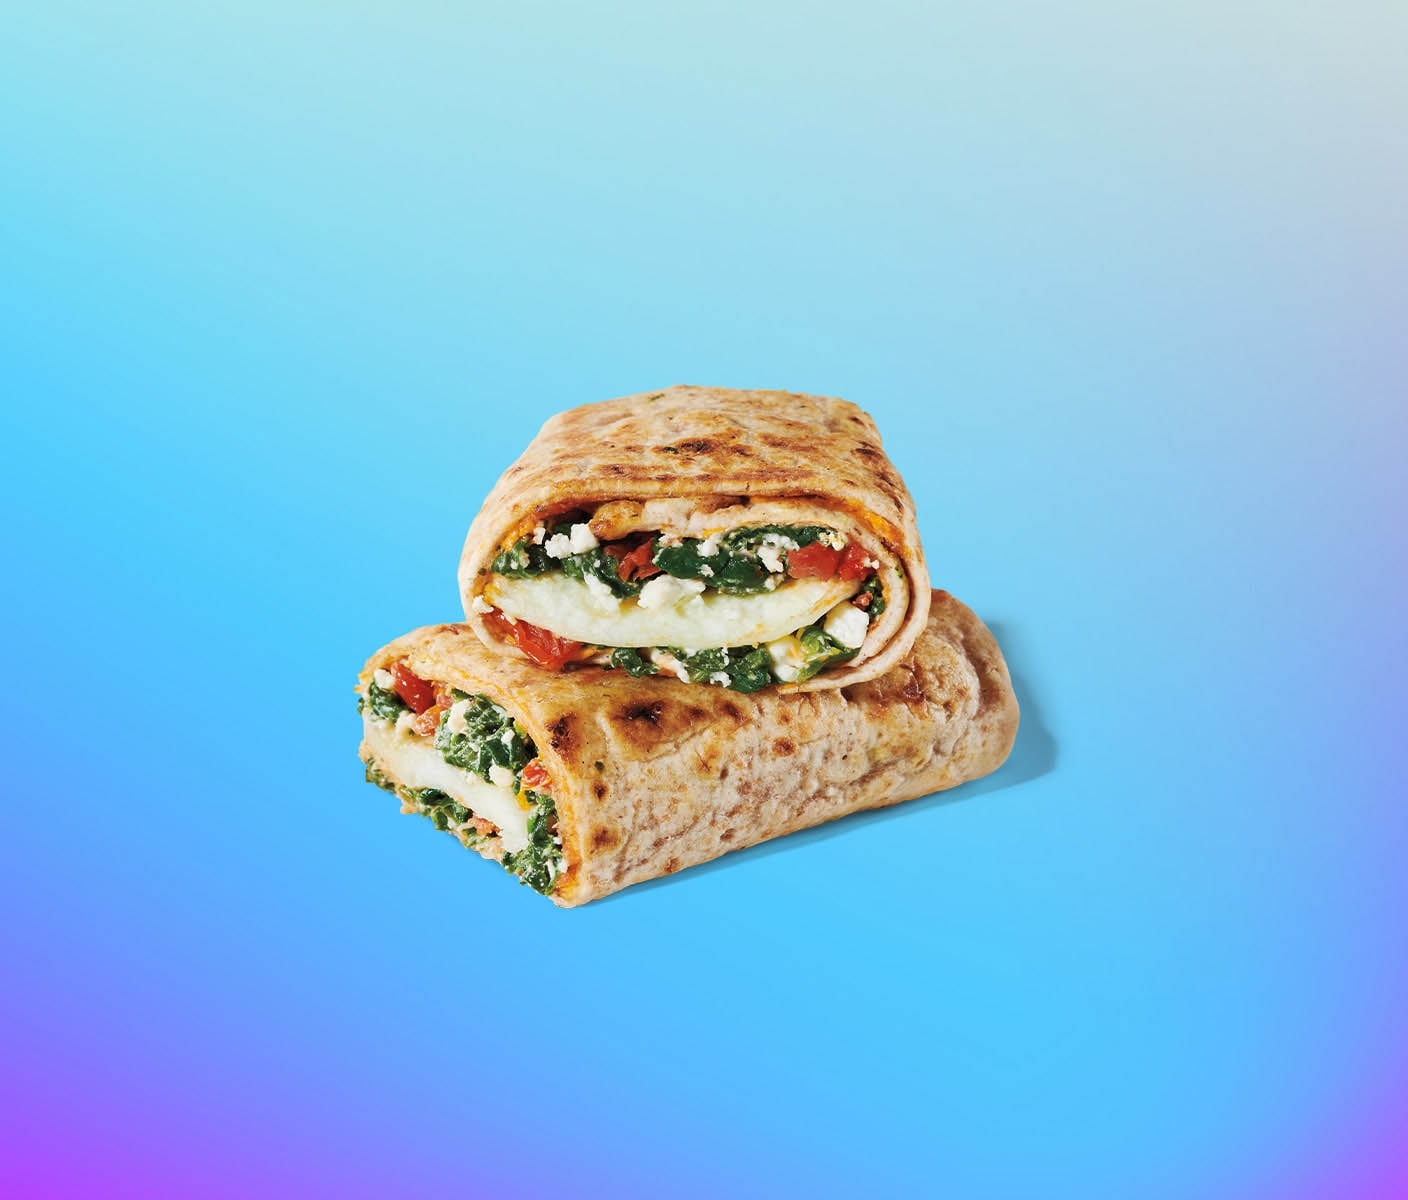 Breakfast wrap cut in half to reveal savoury ingredients